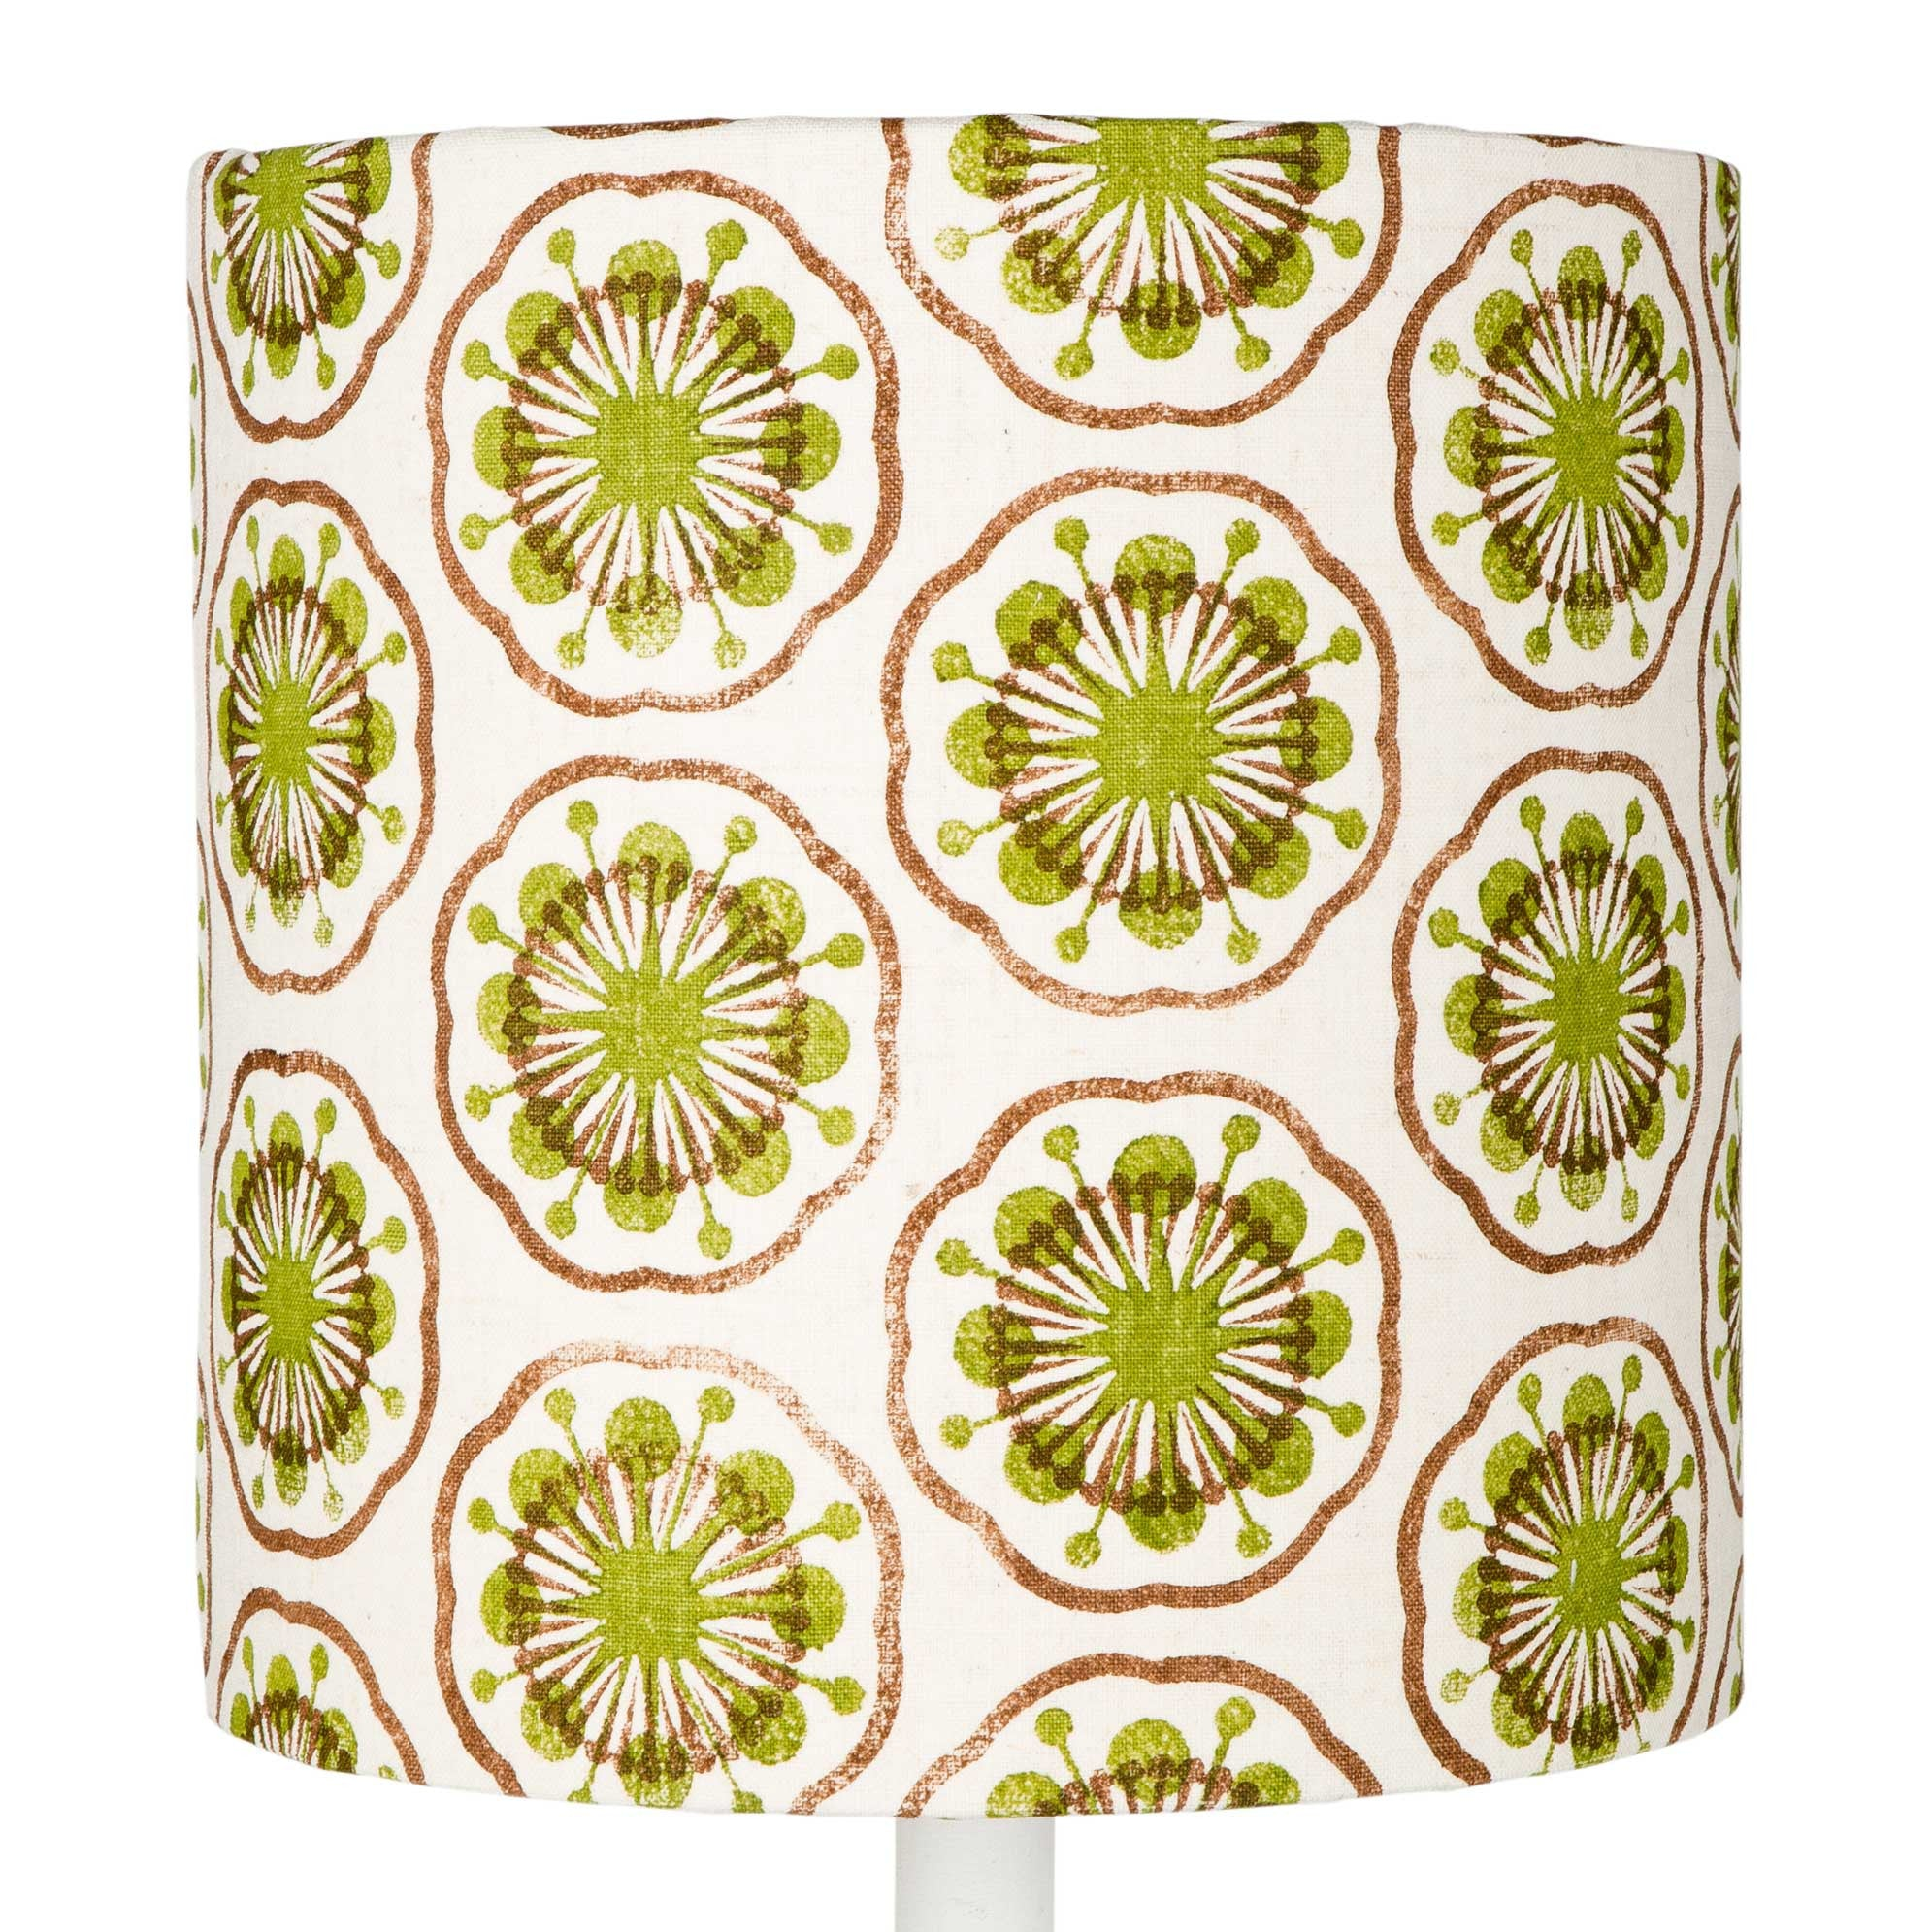 Green & Brown Atomic table lampshade